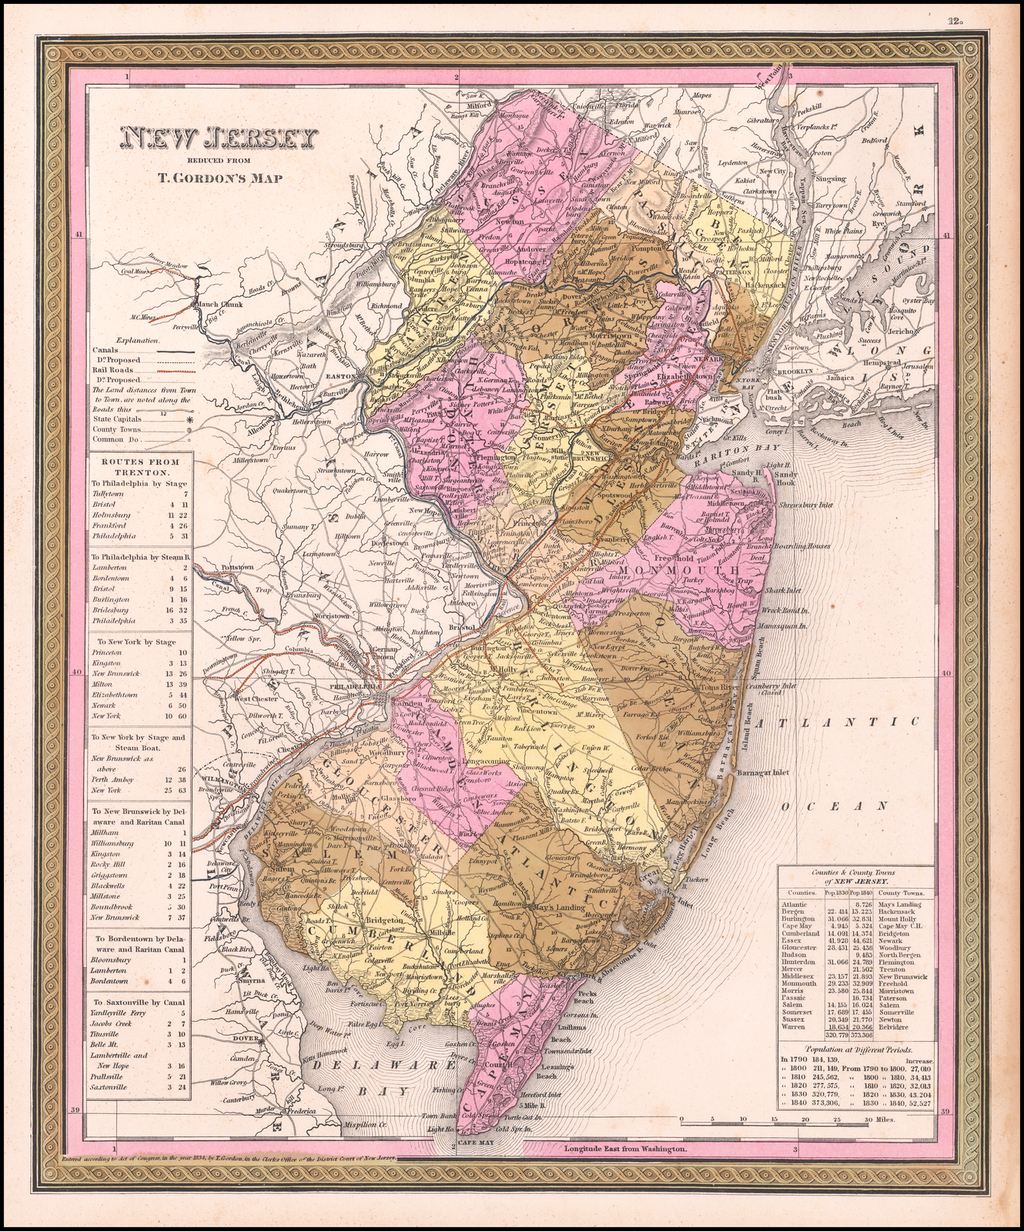 New Jersey Reduced From T. Gordon's Map. By H.S. Tanner.   By Henry Schenk Tanner